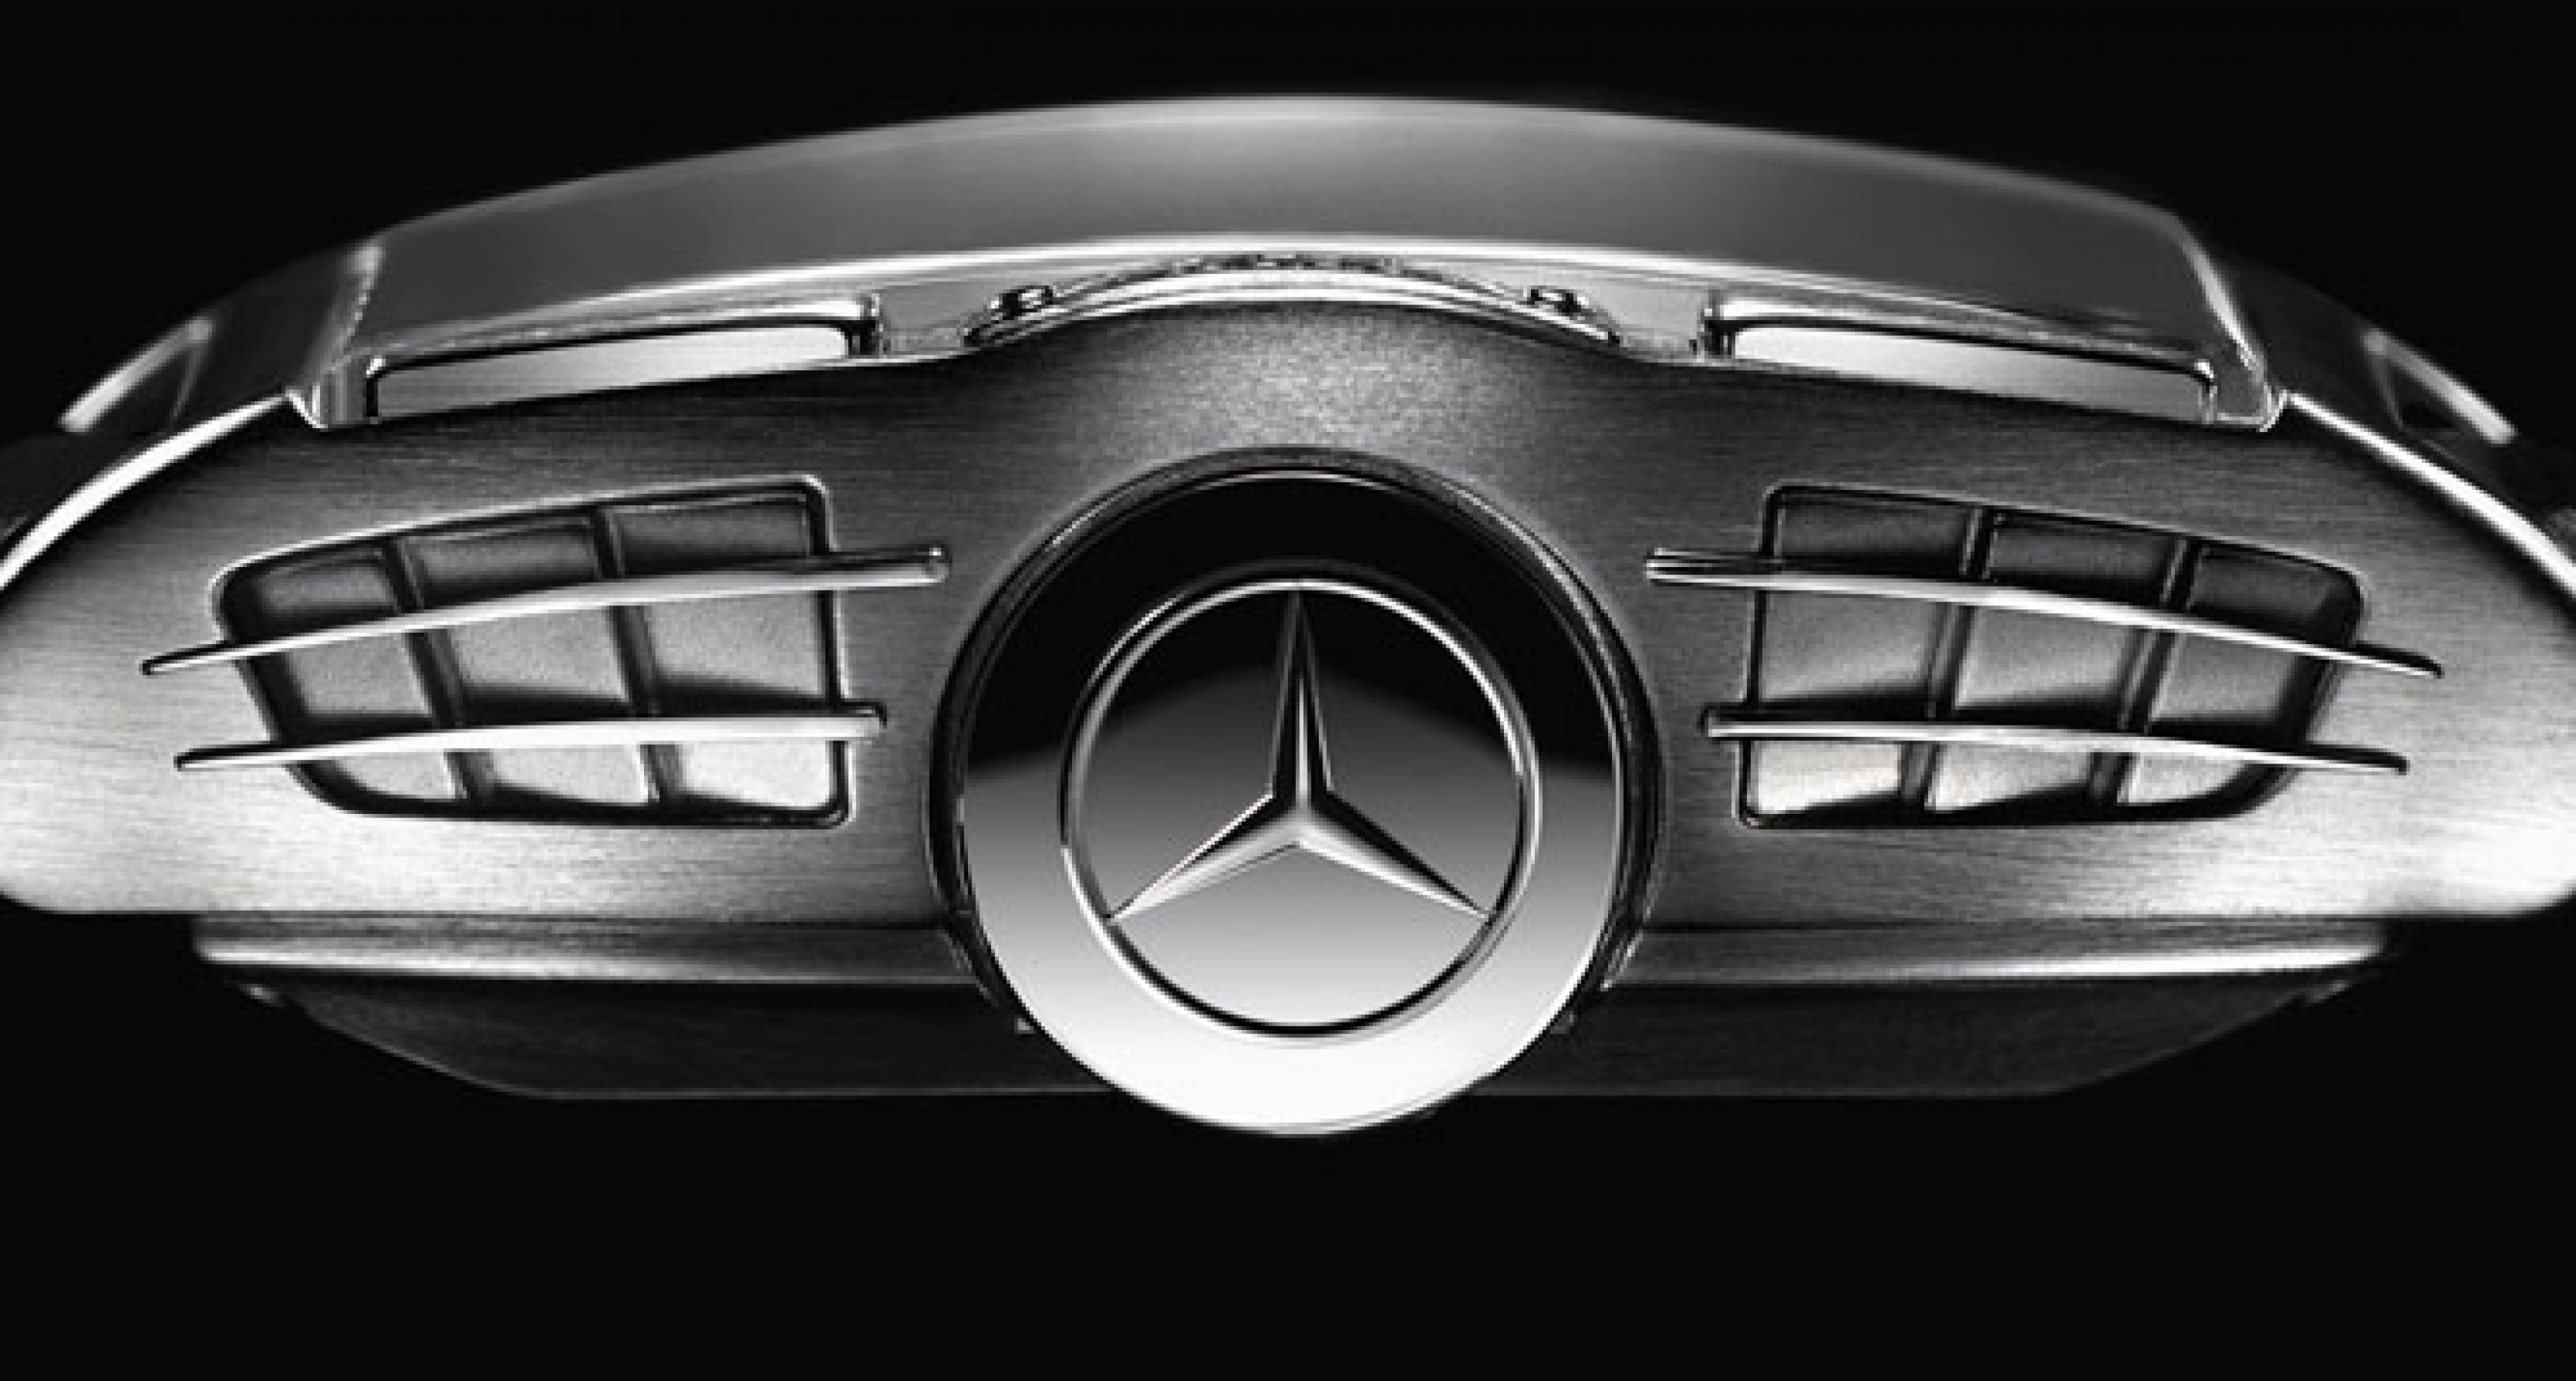 New TAG Heuer chronograph for owners of the SLR McLaren